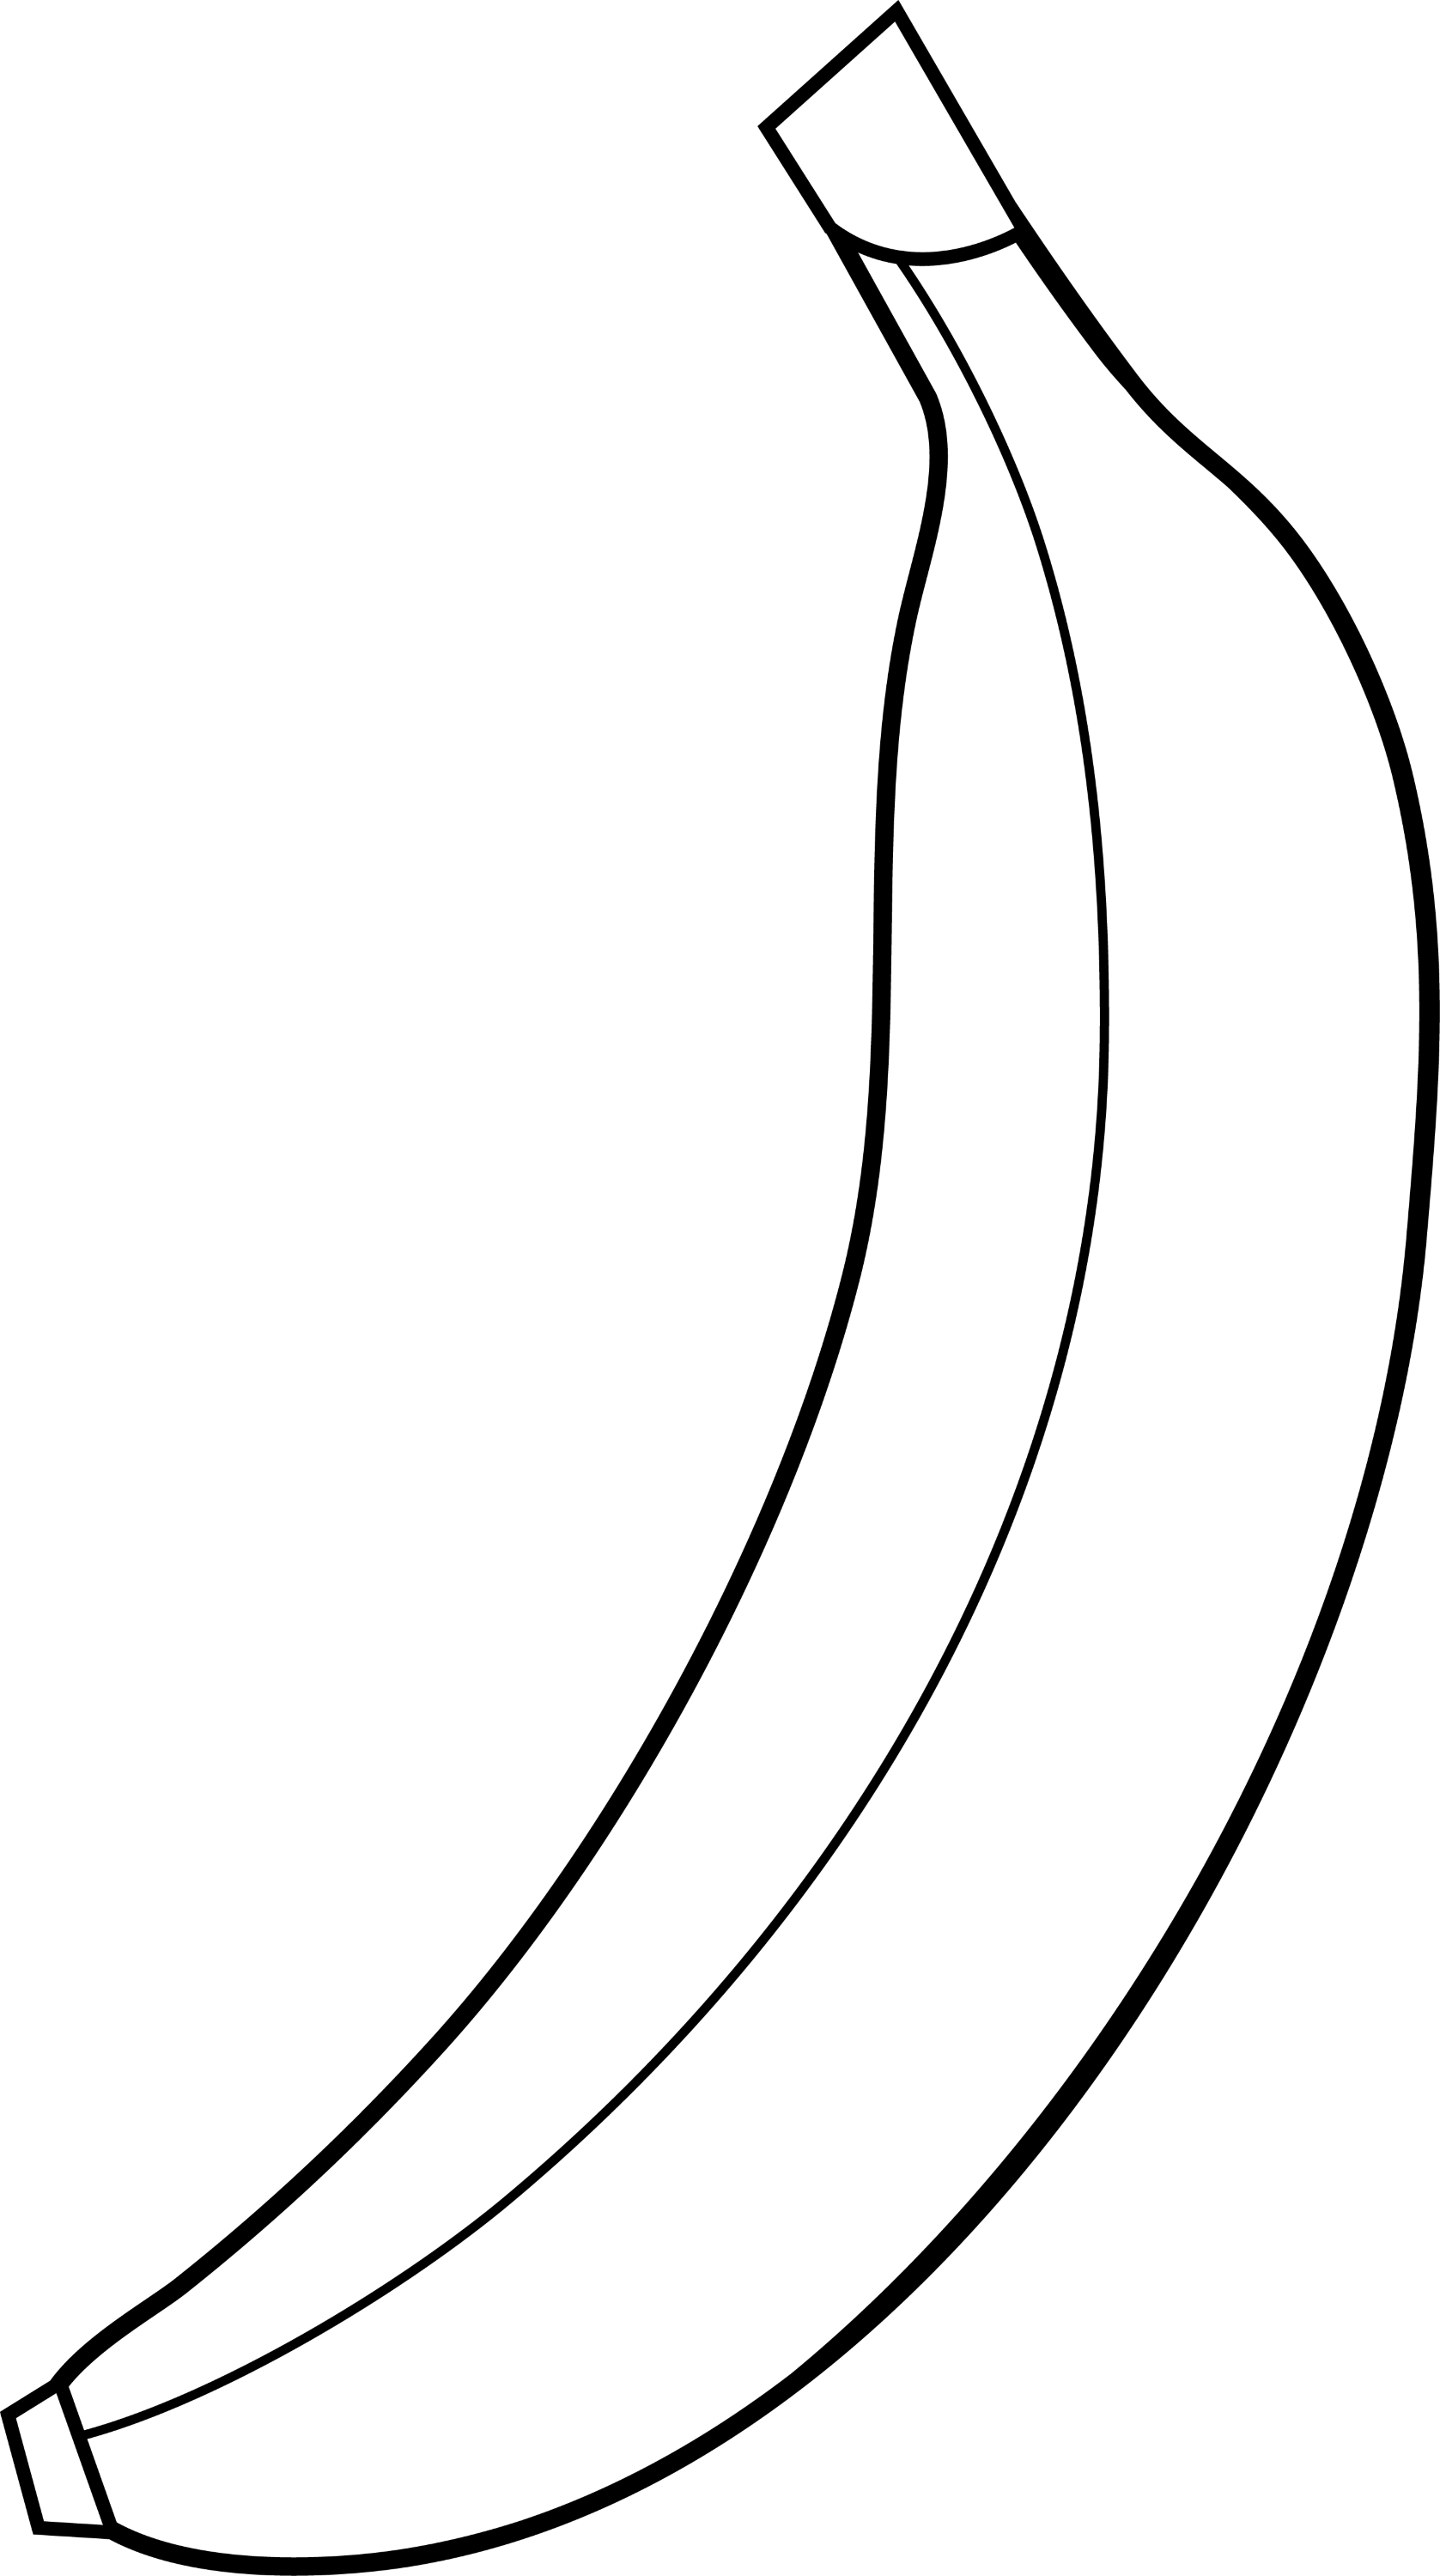 Single Banana Line Art - Free Clip Art